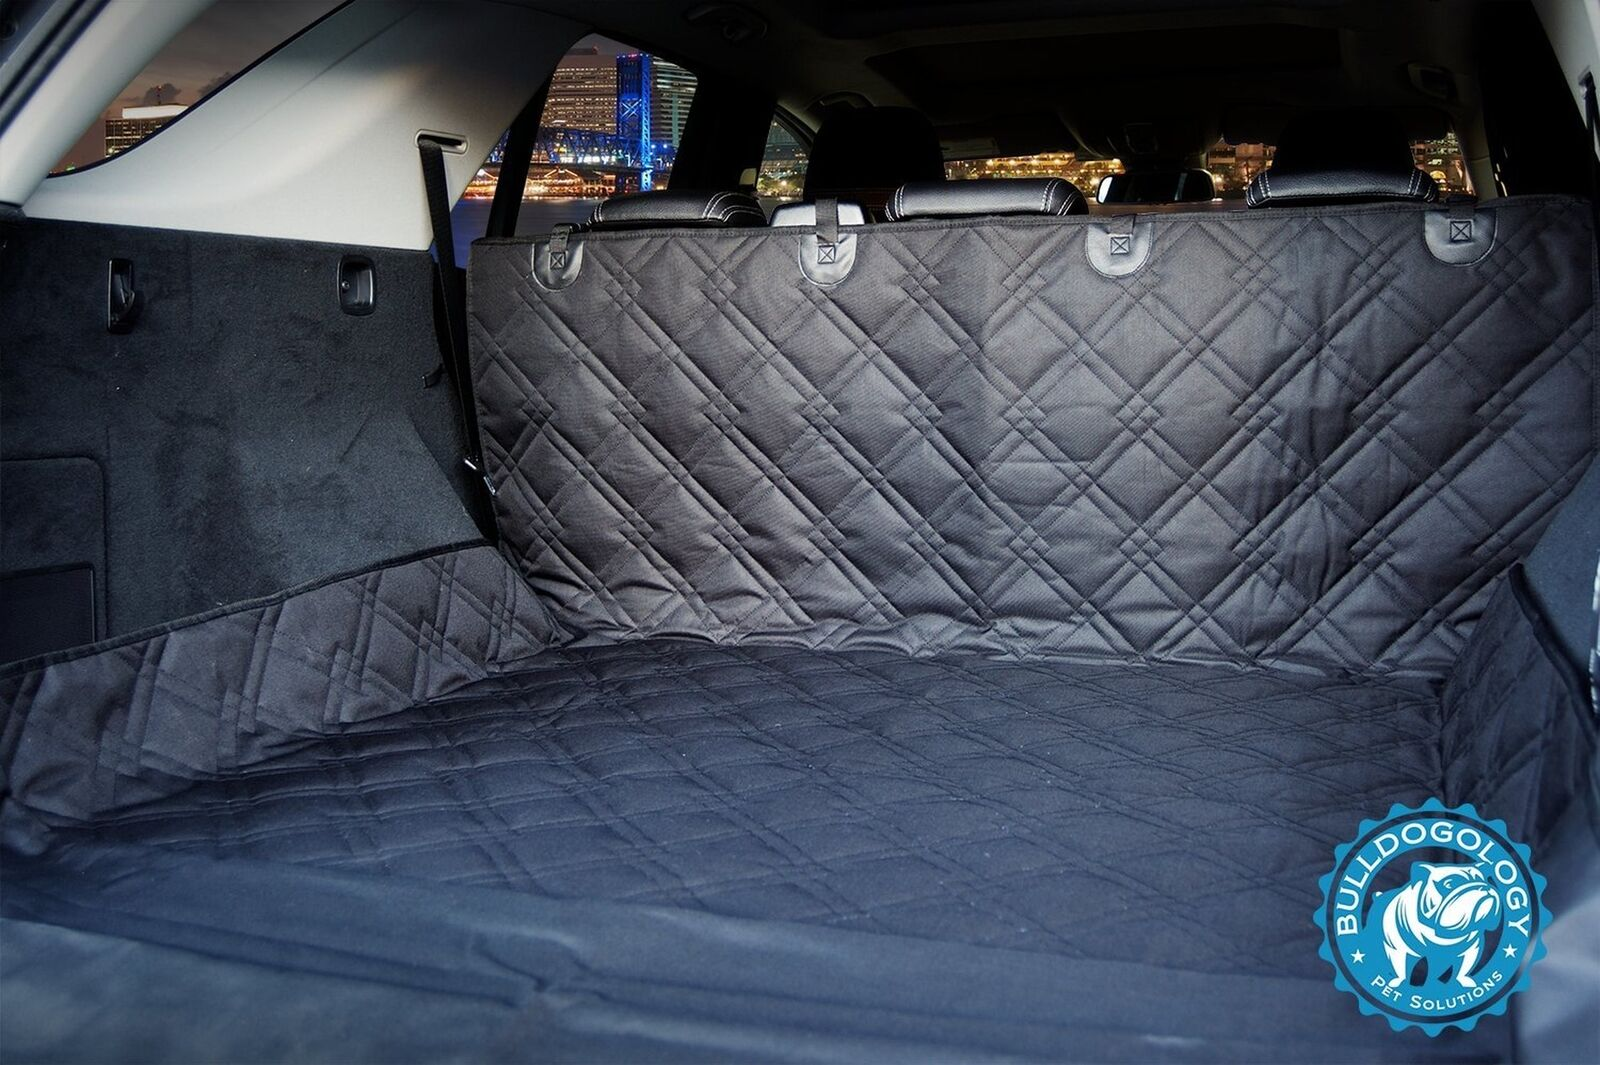 "Bulldogology Heavy Duty Dog Cargo Liner for All Vehicles X-Large 55 x106"" nero"